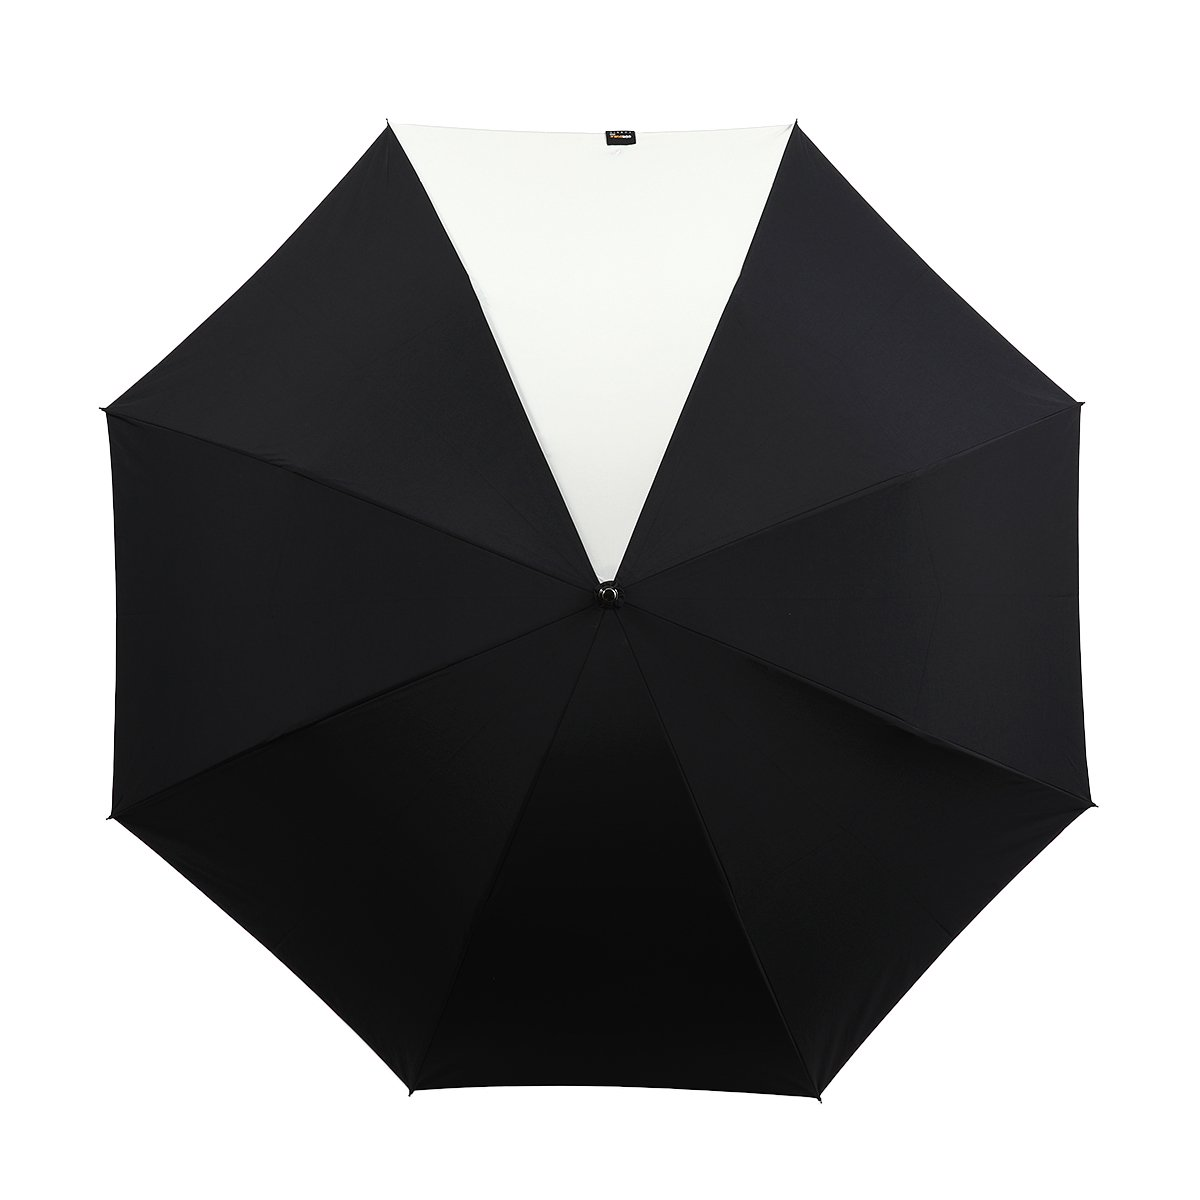 608K CORDURA FOLDING UMBRELLA 詳細画像1